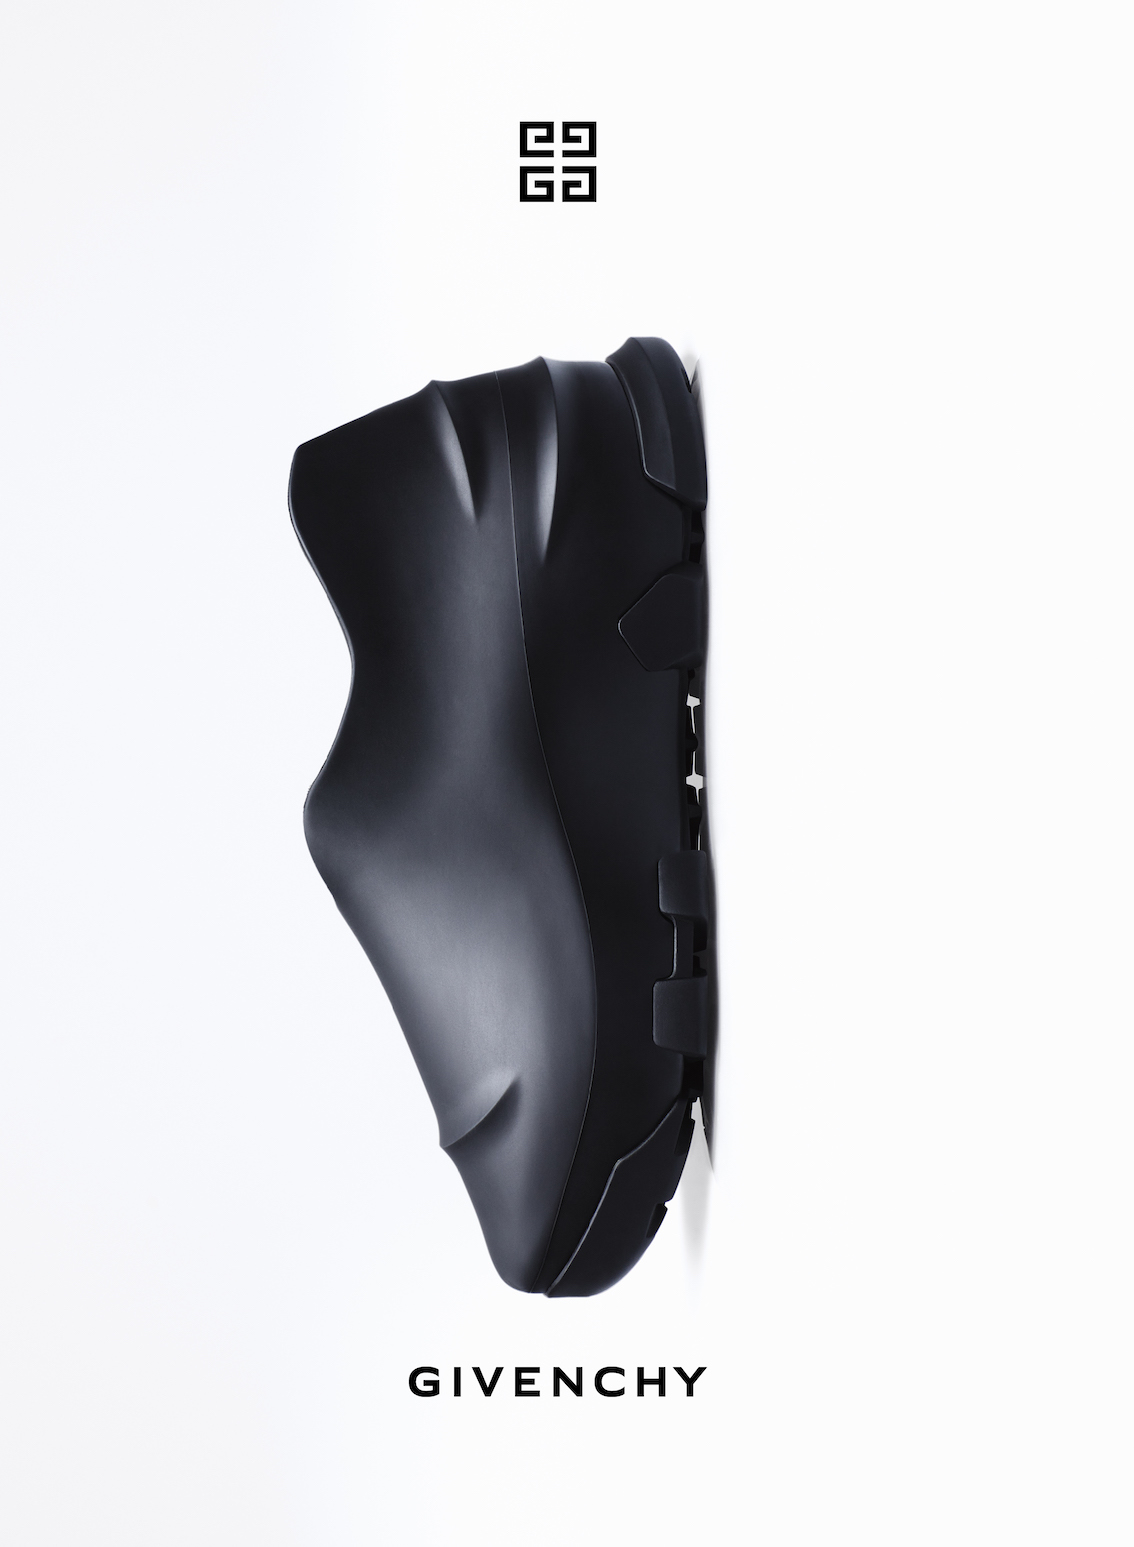 The Monumental Mallow low shoes, as seen in the Givenchy Fall/Winter 2021 campaign. (Photo credit: Givenchy)